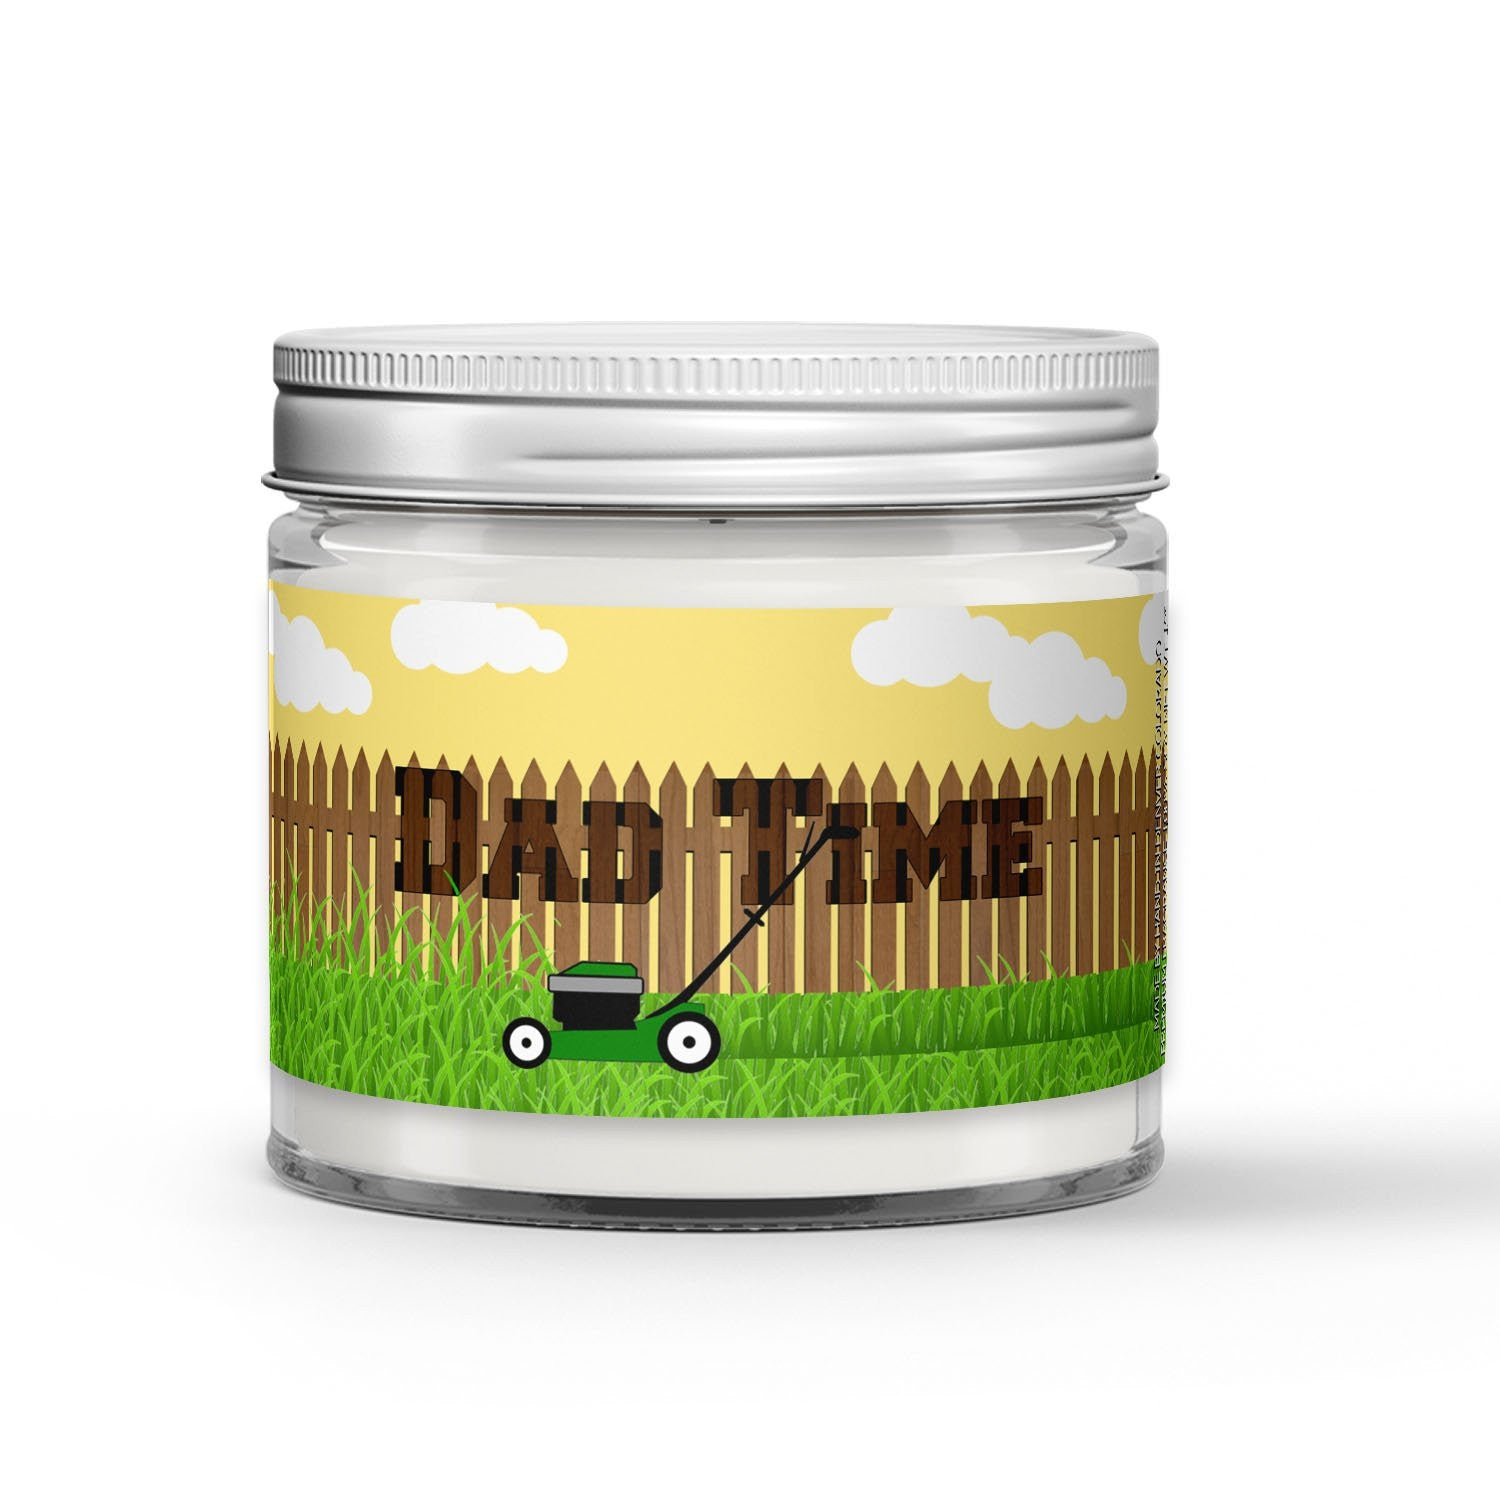 Dad Time Candle - Grass - Sprinkler Water - Earth - 1oz Adorable Size Candle® - Dio Candle Company